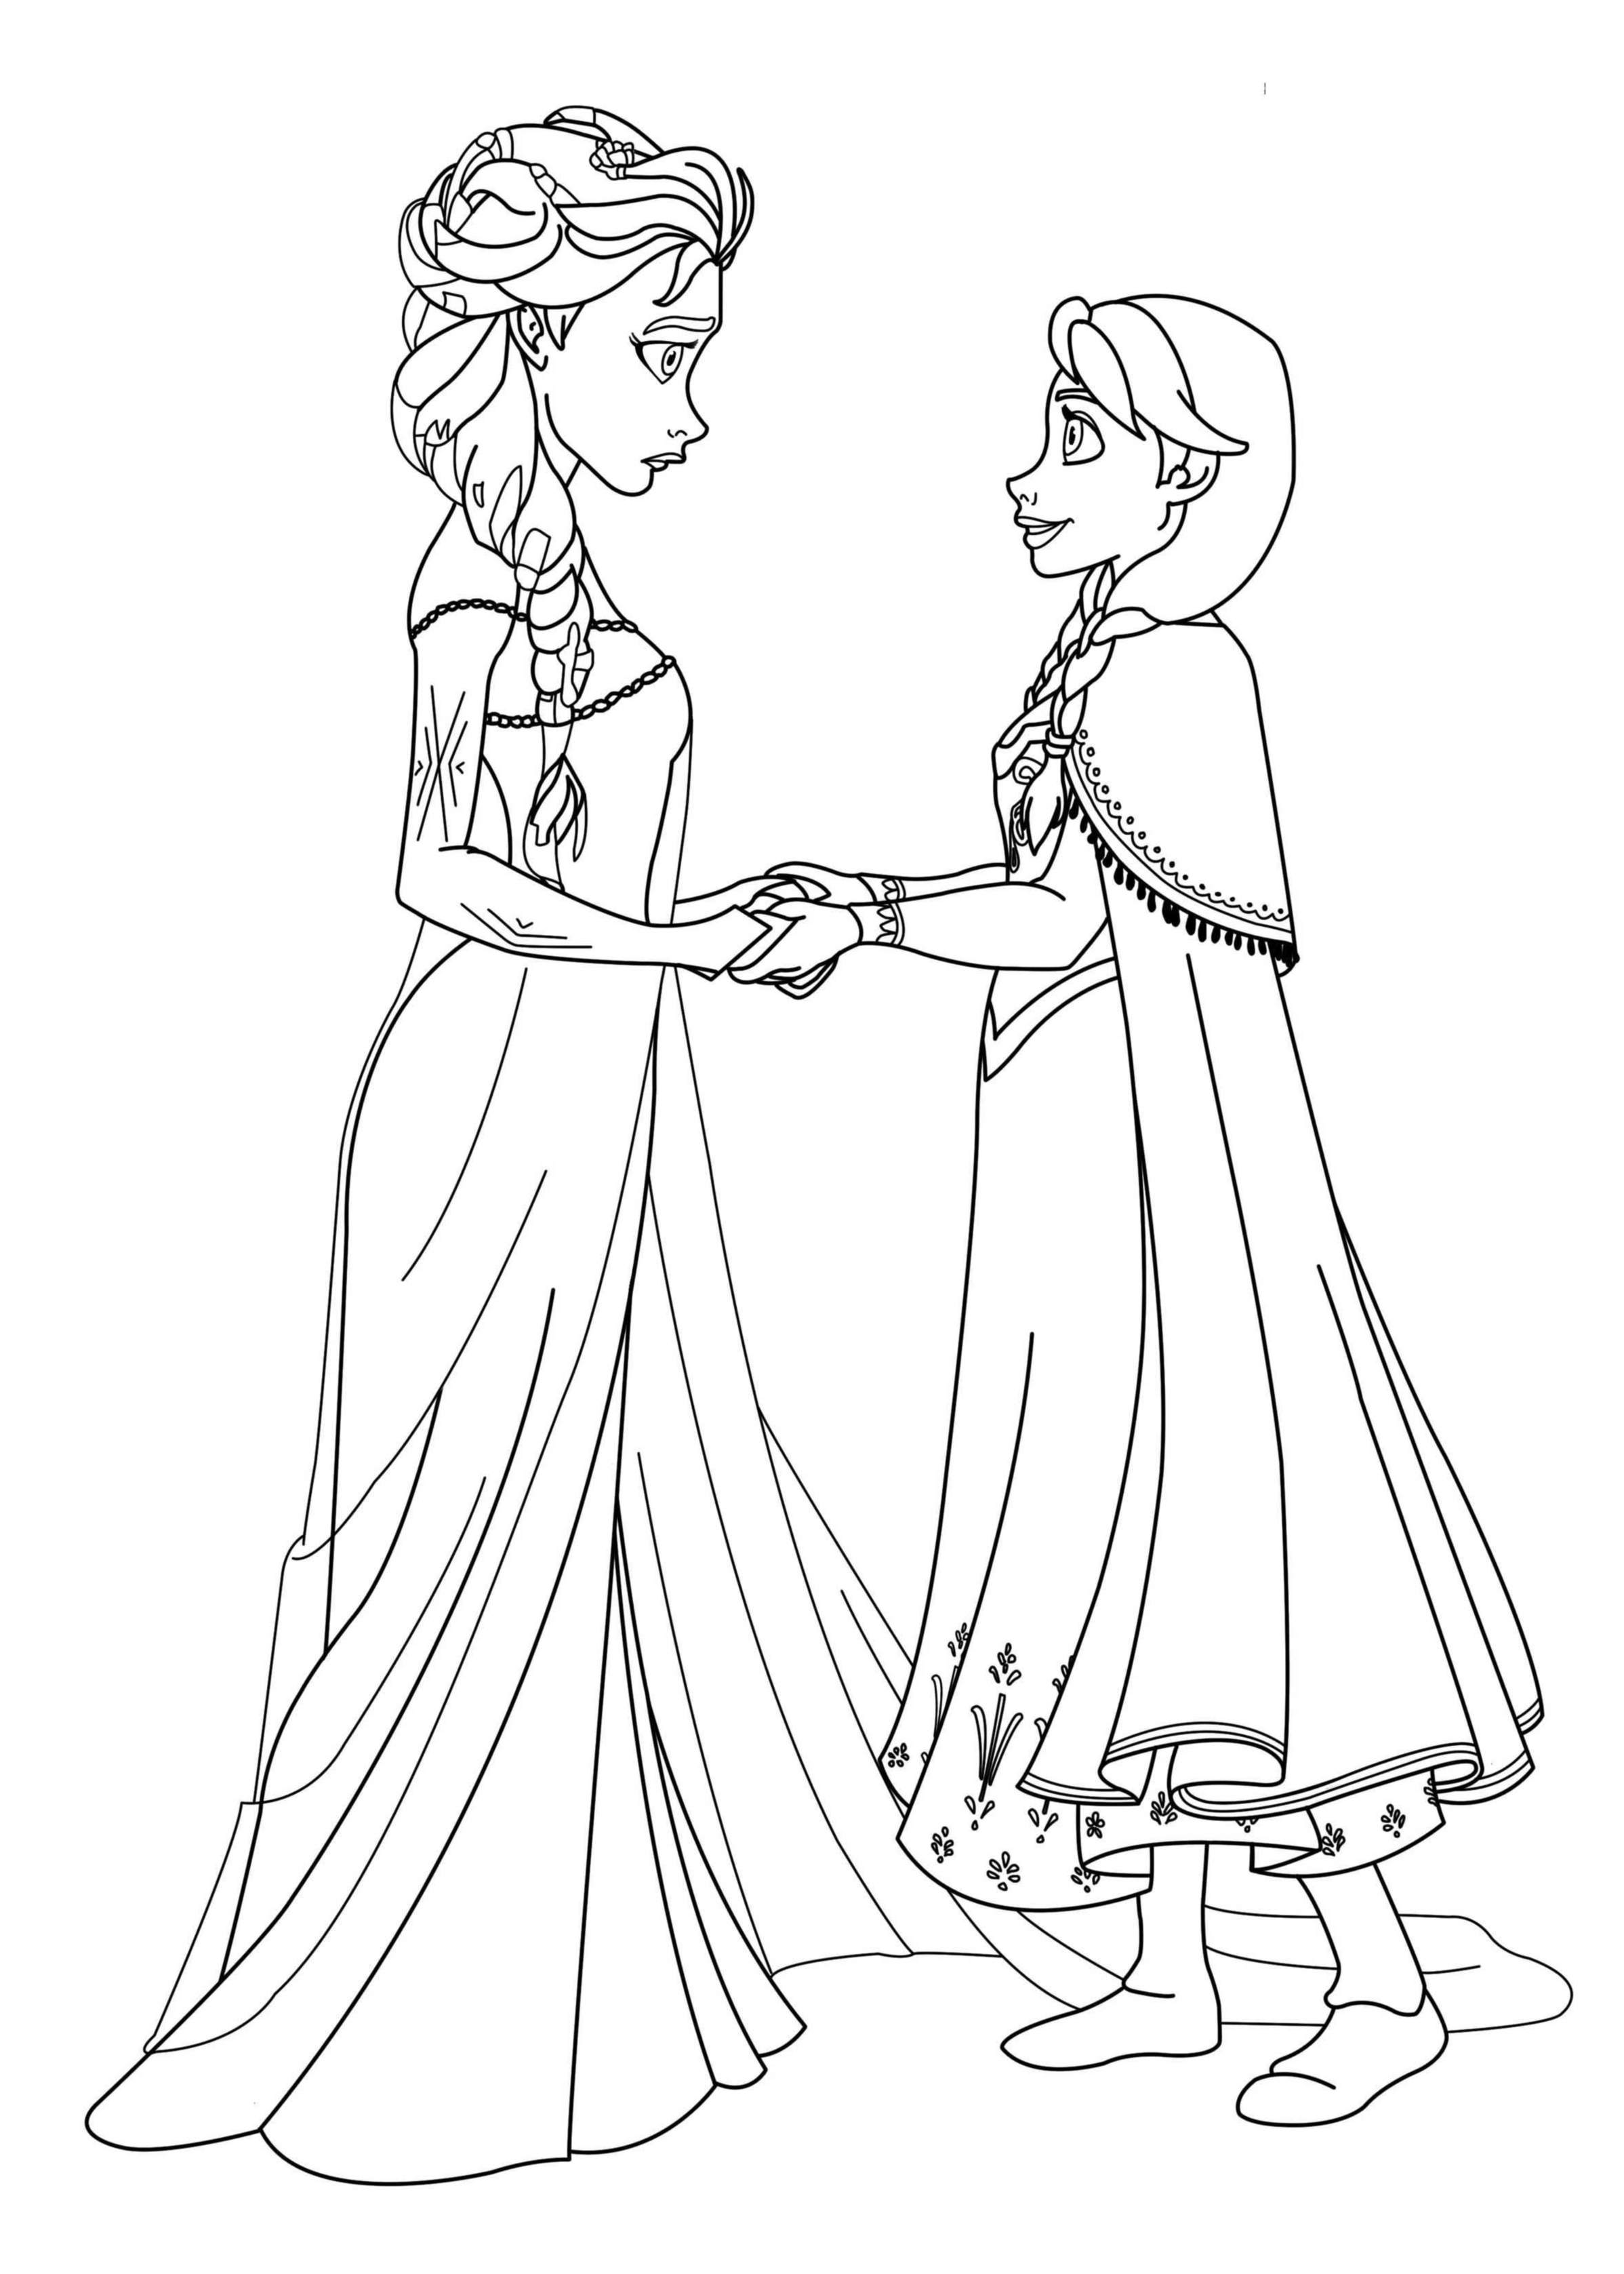 Frozen free to color for children - Frozen Kids Coloring Pages